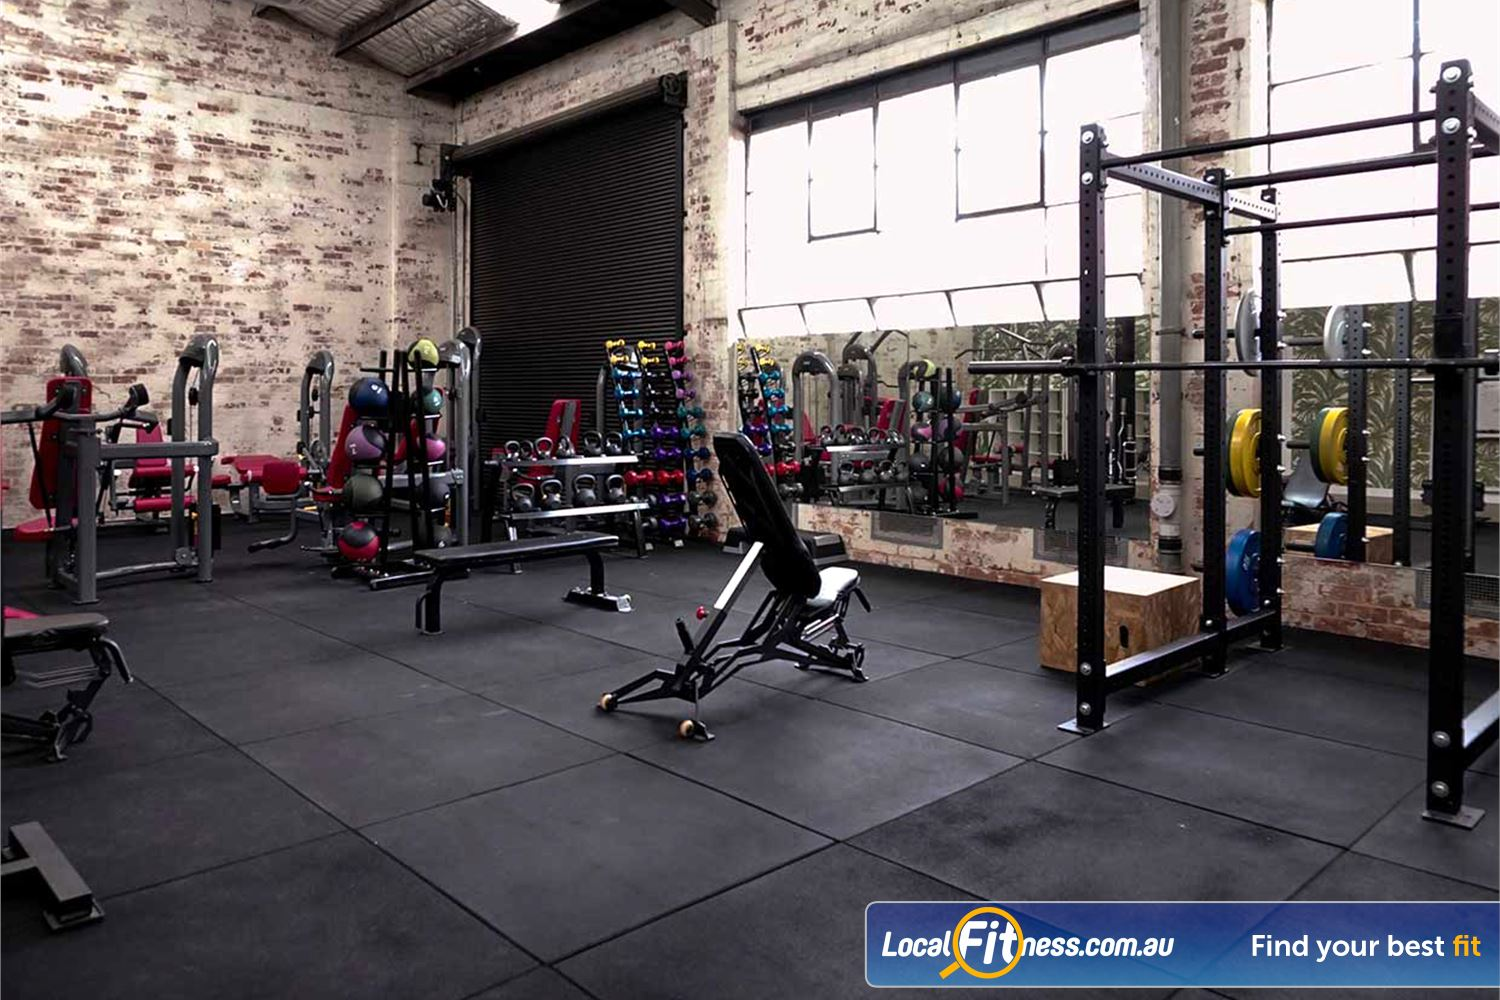 Dukes 24hr Gym Near Toorak Fully equipped ladies only Richmond gym.